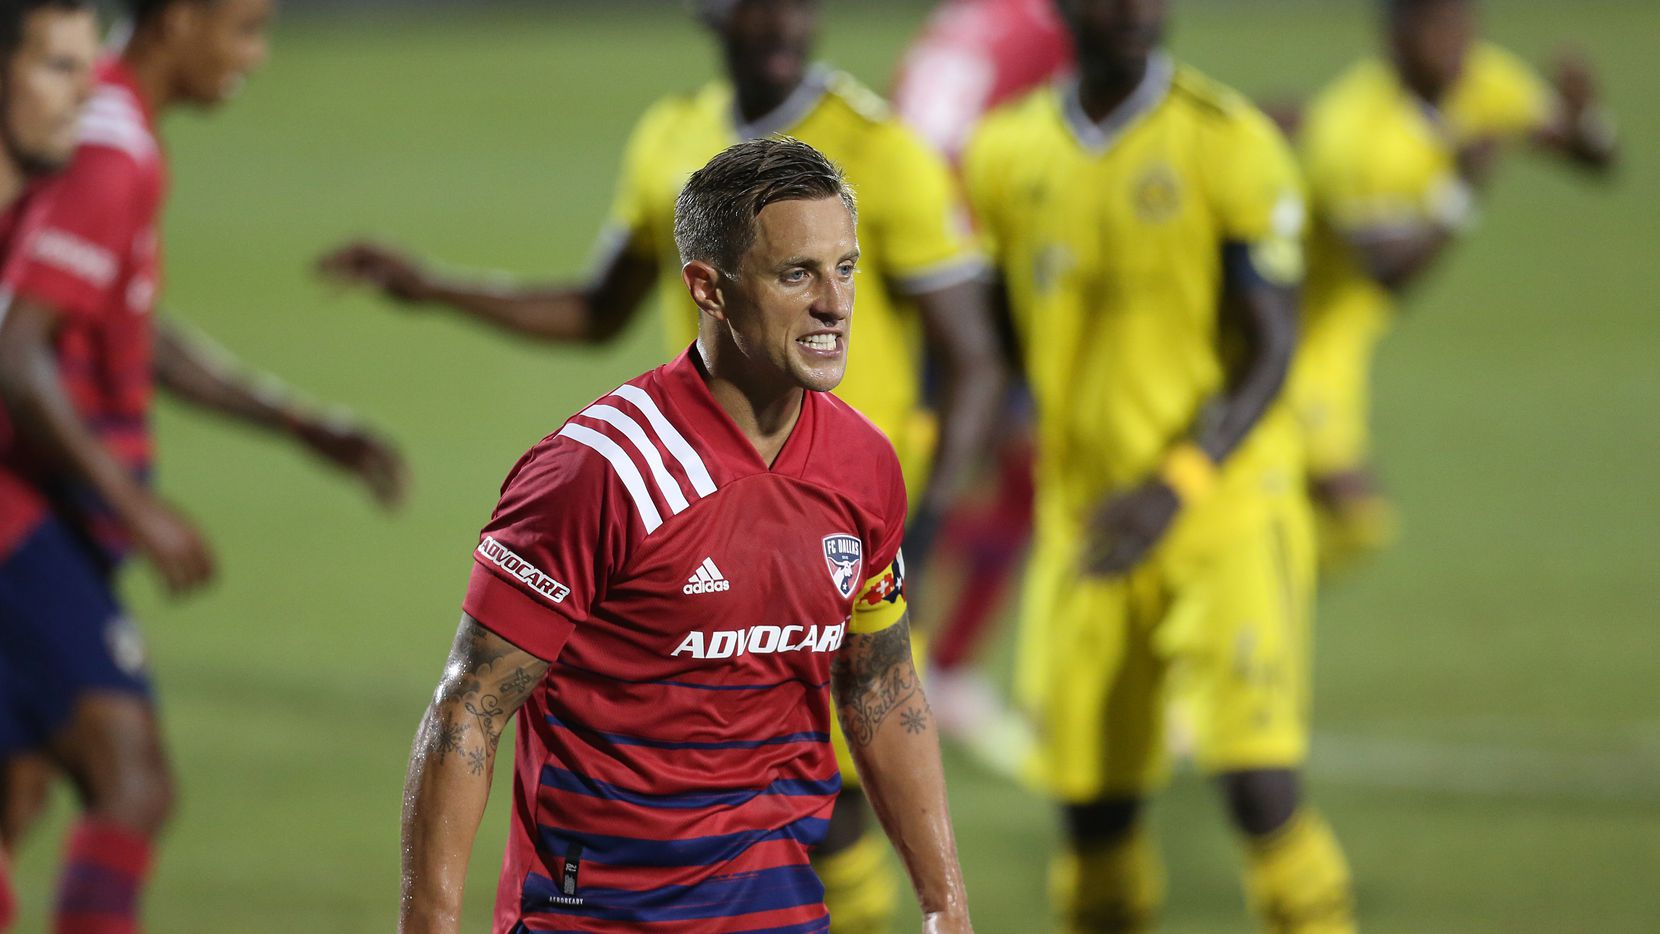 FRISCO, TX - OCTOBER 3: Reto Ziegler #3 of FC Dallas reacts during MLS Game between FC Dallas and Columbus Crew SC at Toyota Stadium on October 3, 2020 in Frisco, Texas.